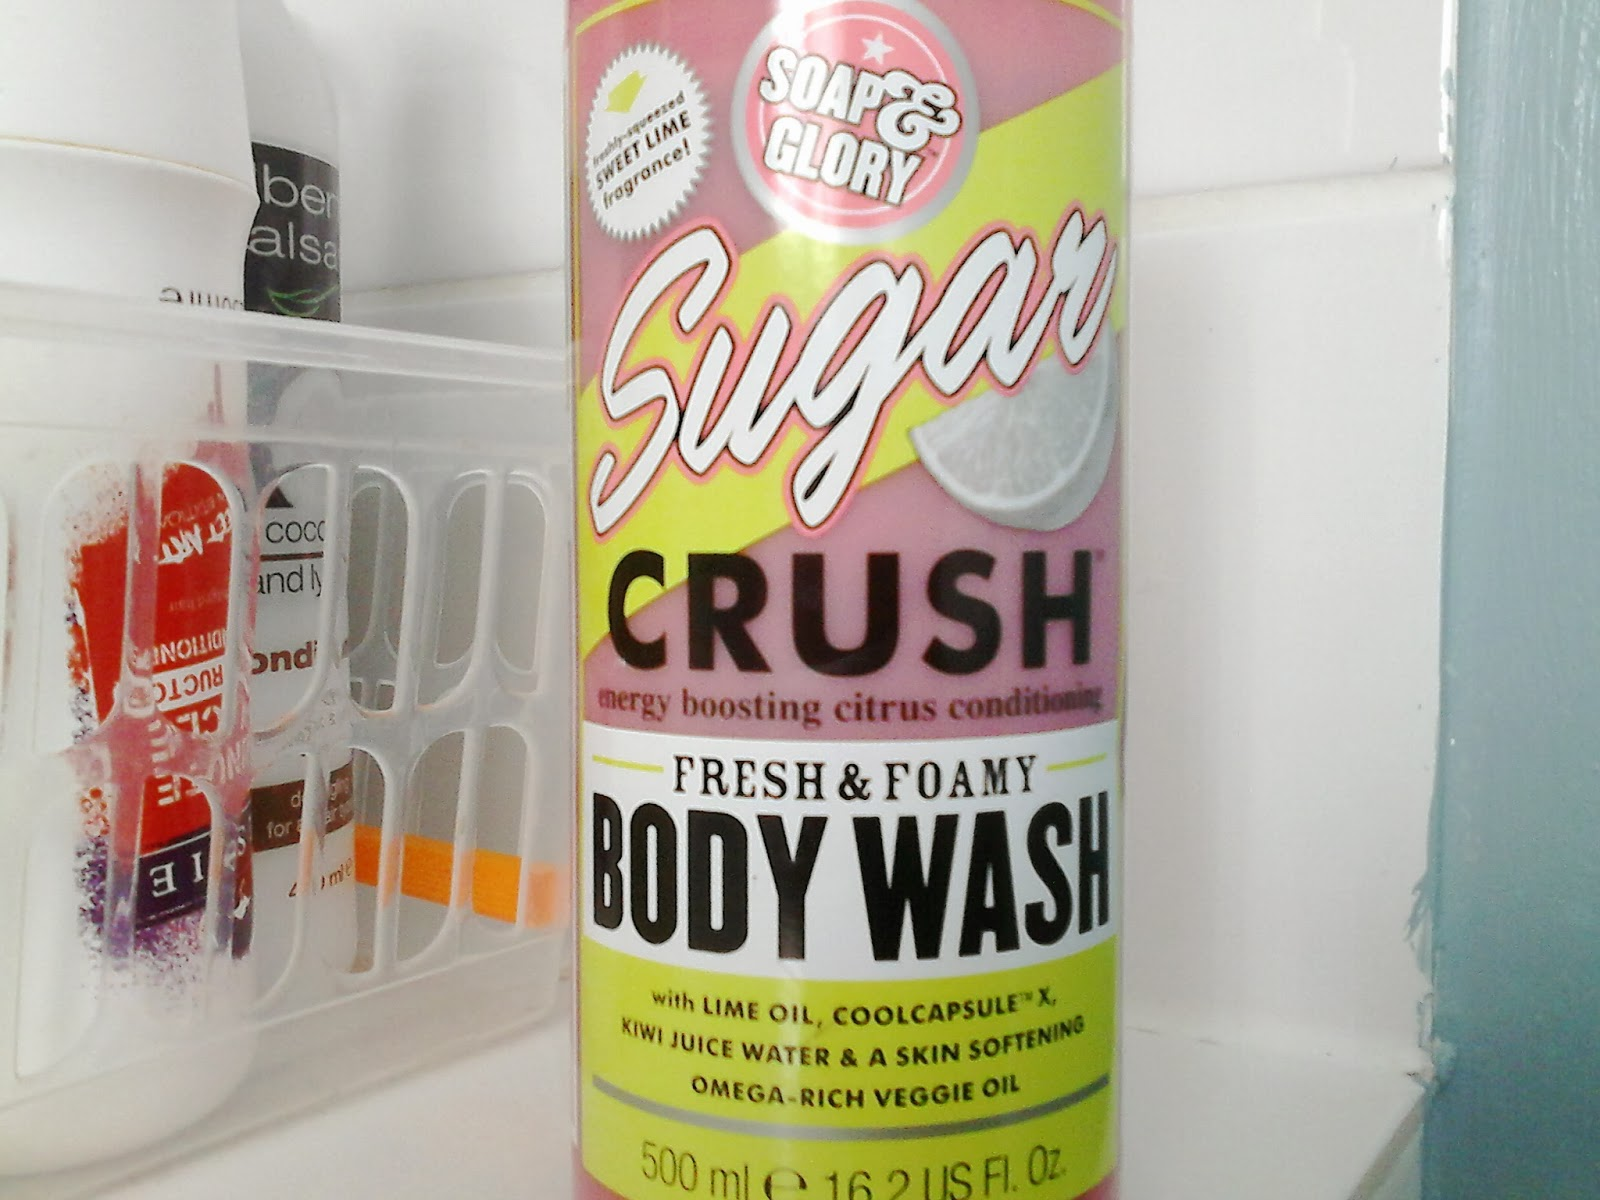 Soap and Glory Sugar Crush Body Wash